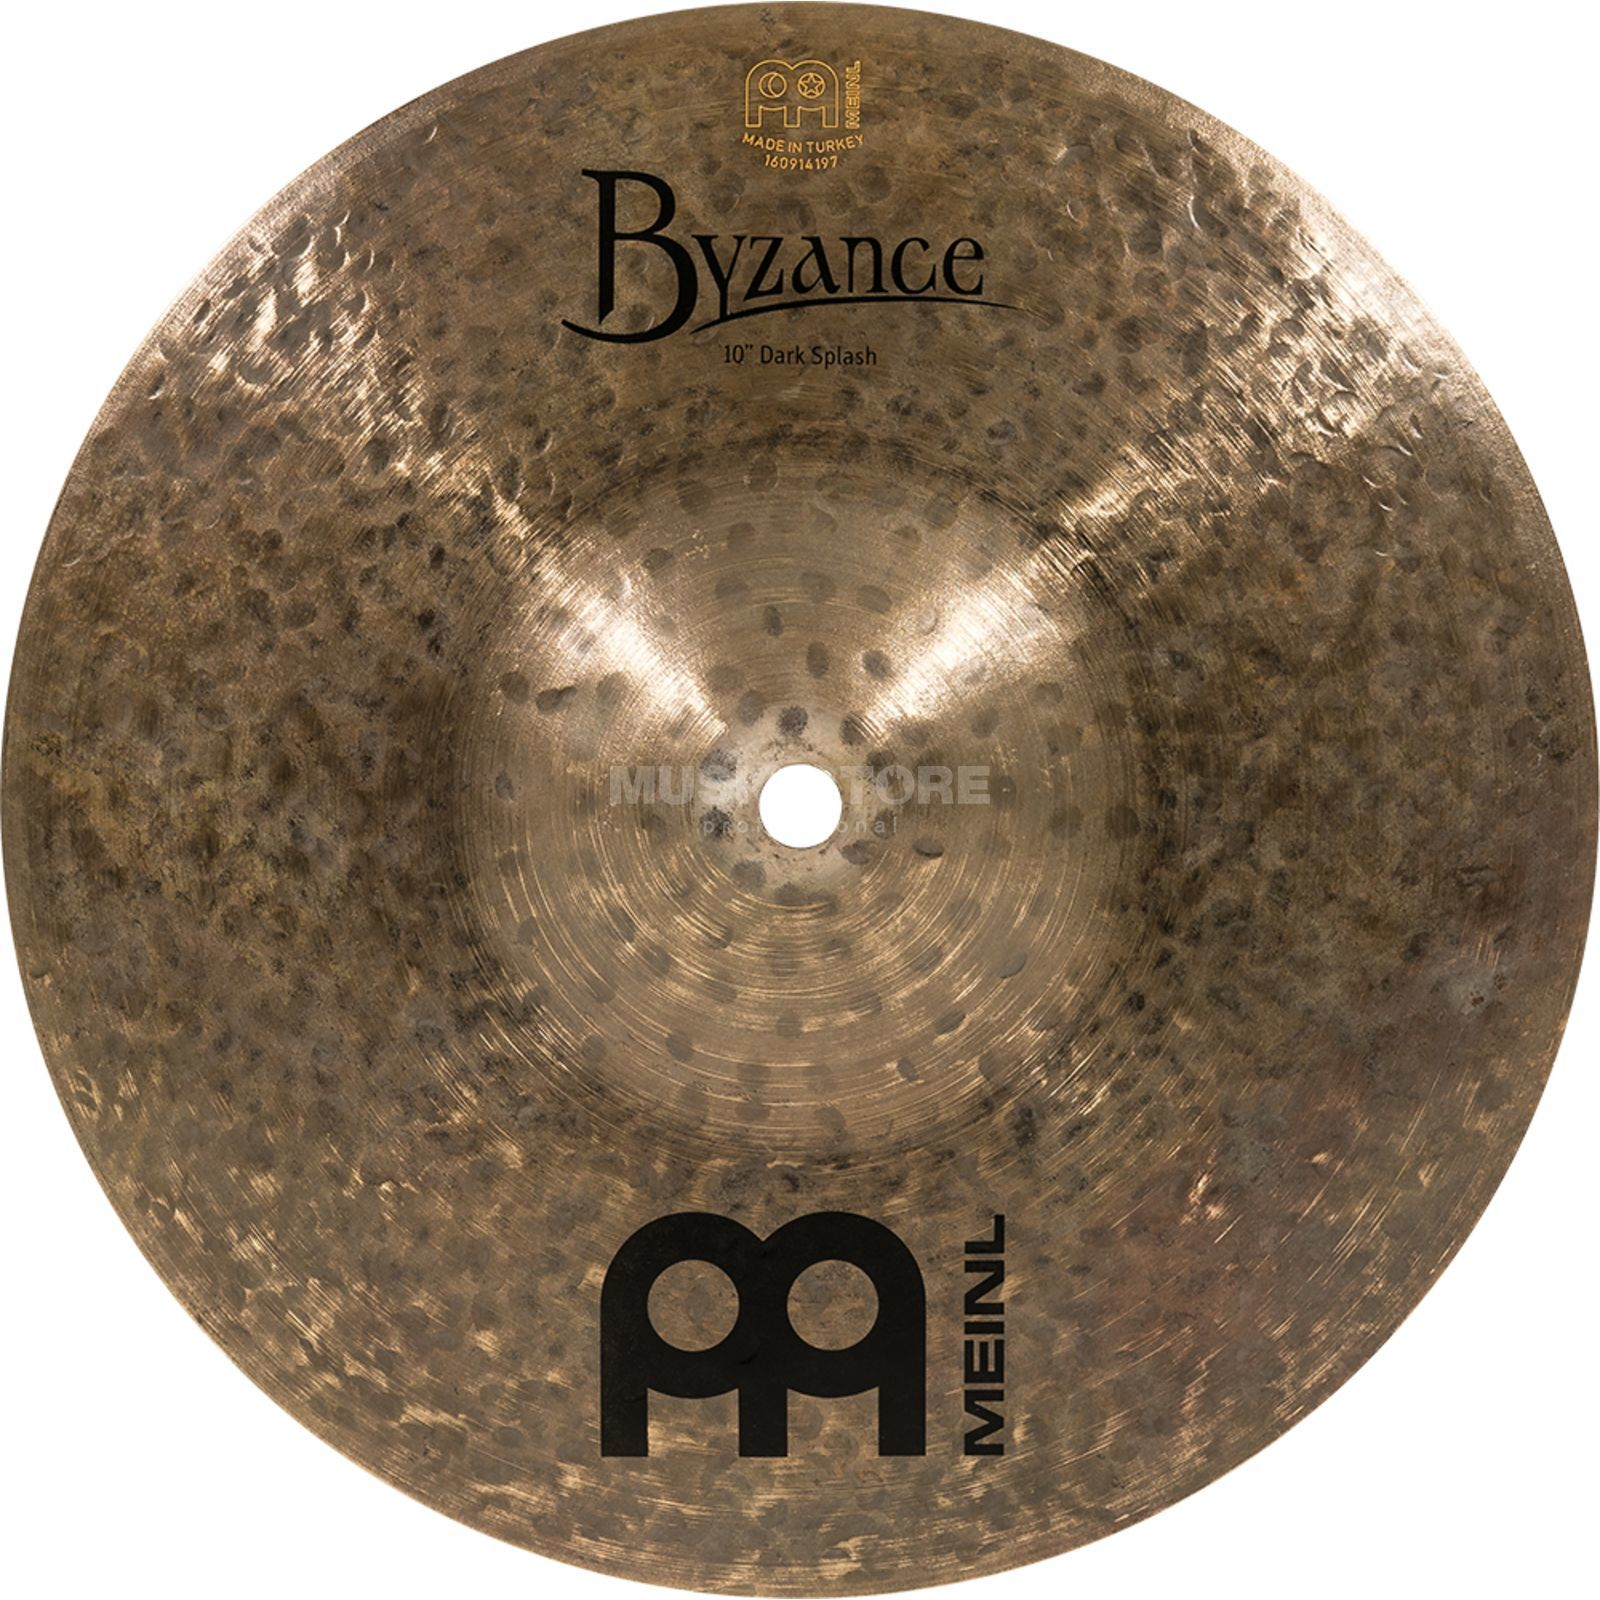 "Meinl Byzance Dark Splash 10"" B10DAS, Dark Finish Product Image"